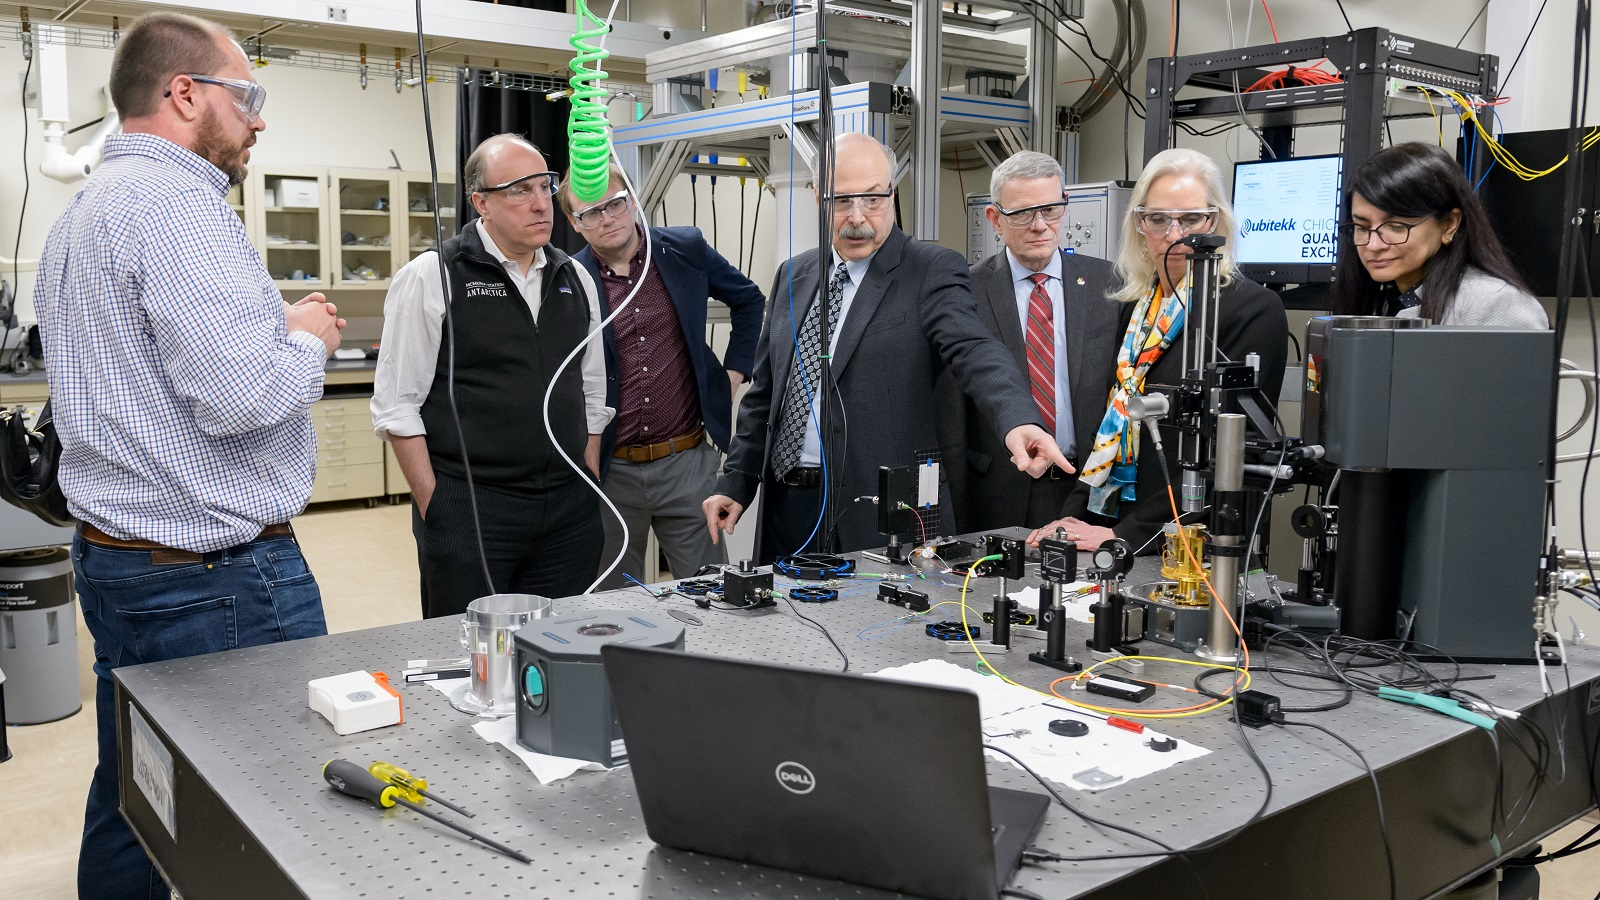 Department of Energy Under Secretary for Science Paul Dabbar and Argonne and UChicago scientists and leaders discuss quantum entanglement along Argonne's quantum loop, a 52-mile fiber optic testbed for quantum communication in the Chicago suburbs. (Image by Argonne National Laboratory.)